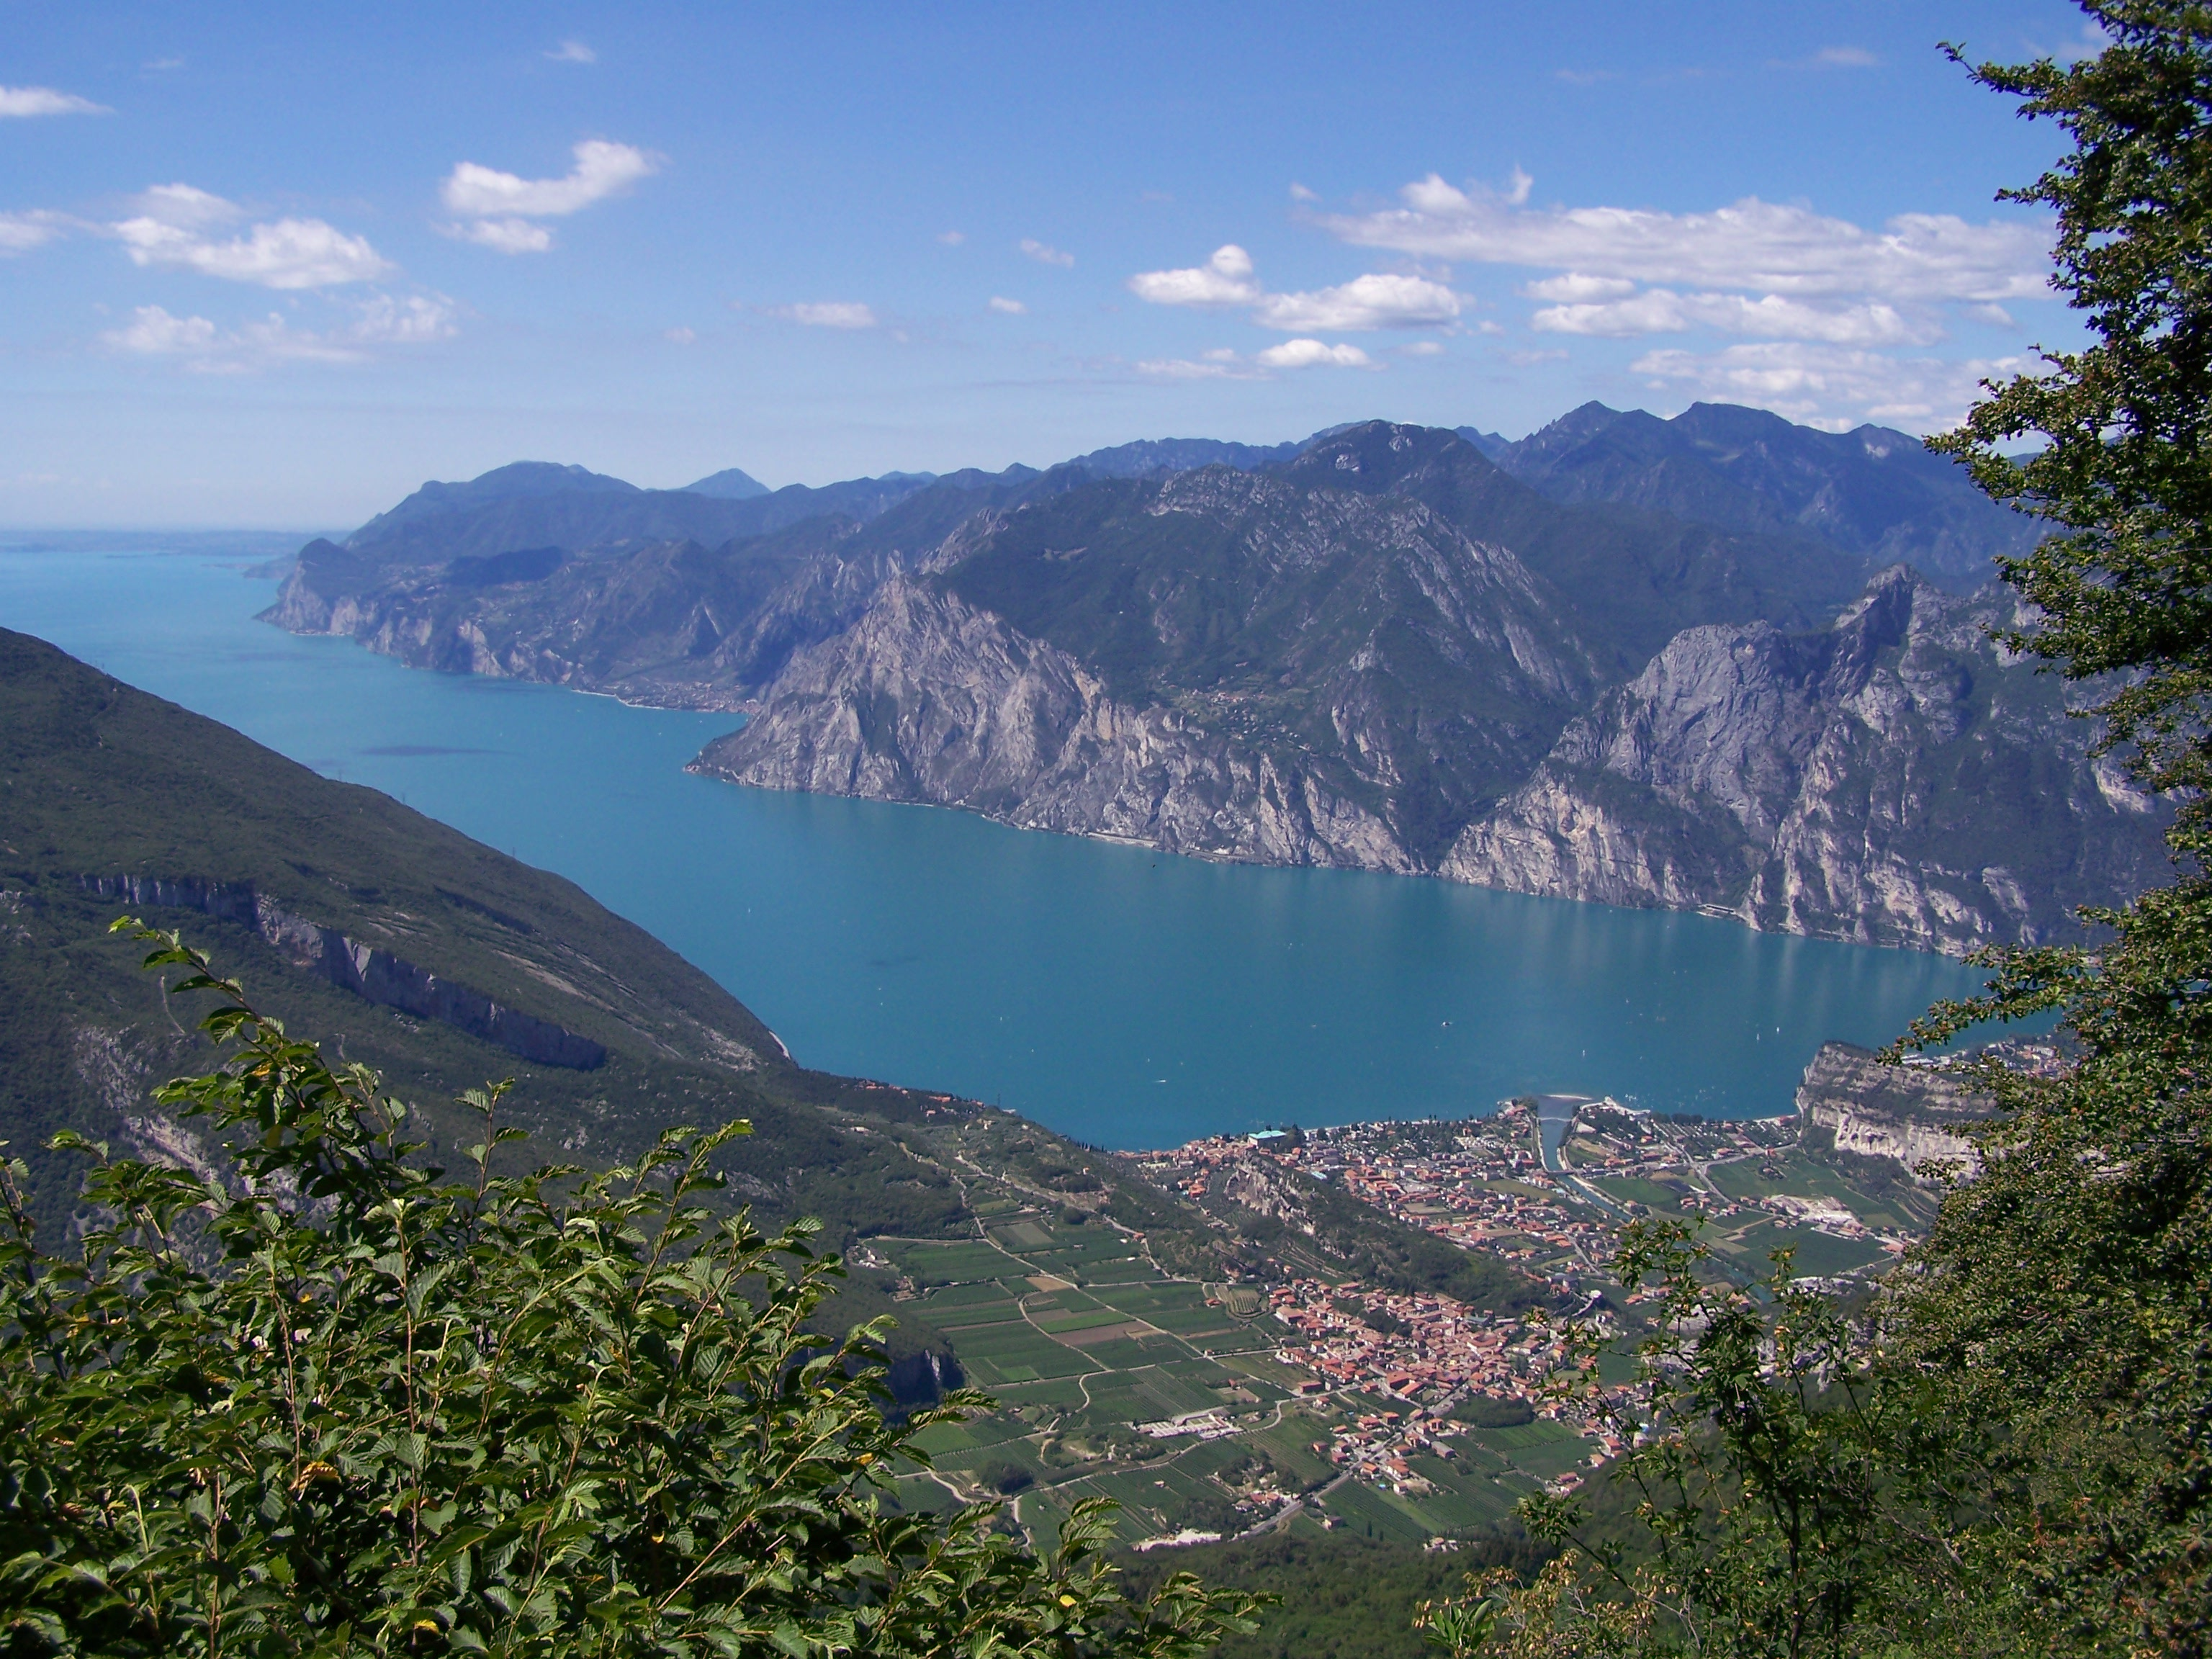 Lago di Garda